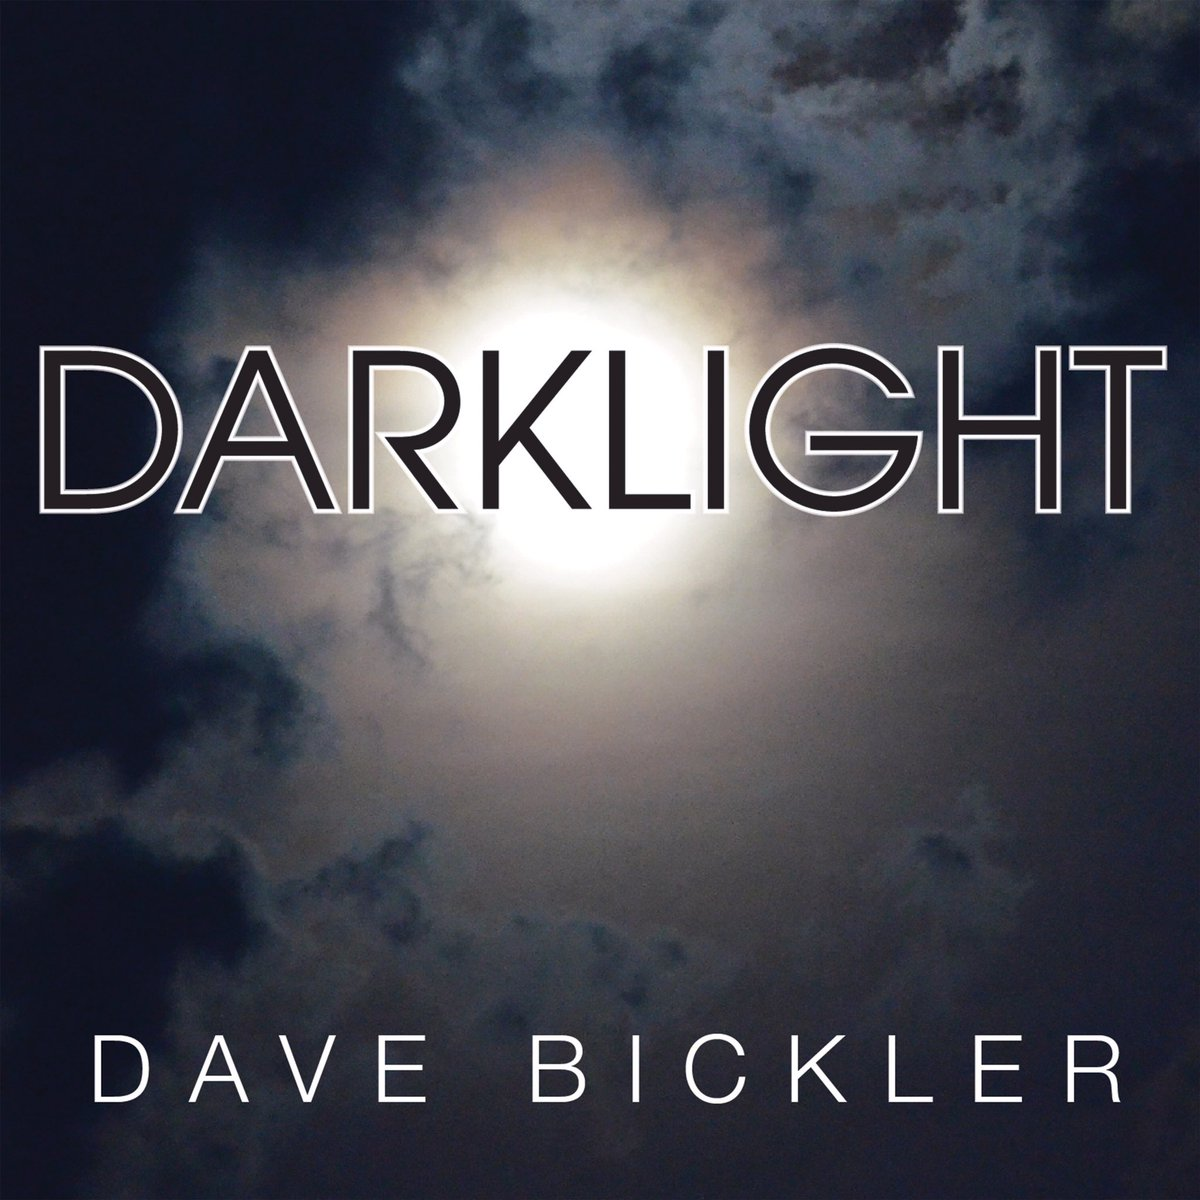 Dark Light Theres More Of It Coming >> Dave Bickler On Twitter I Found It My New Album Darklight Is